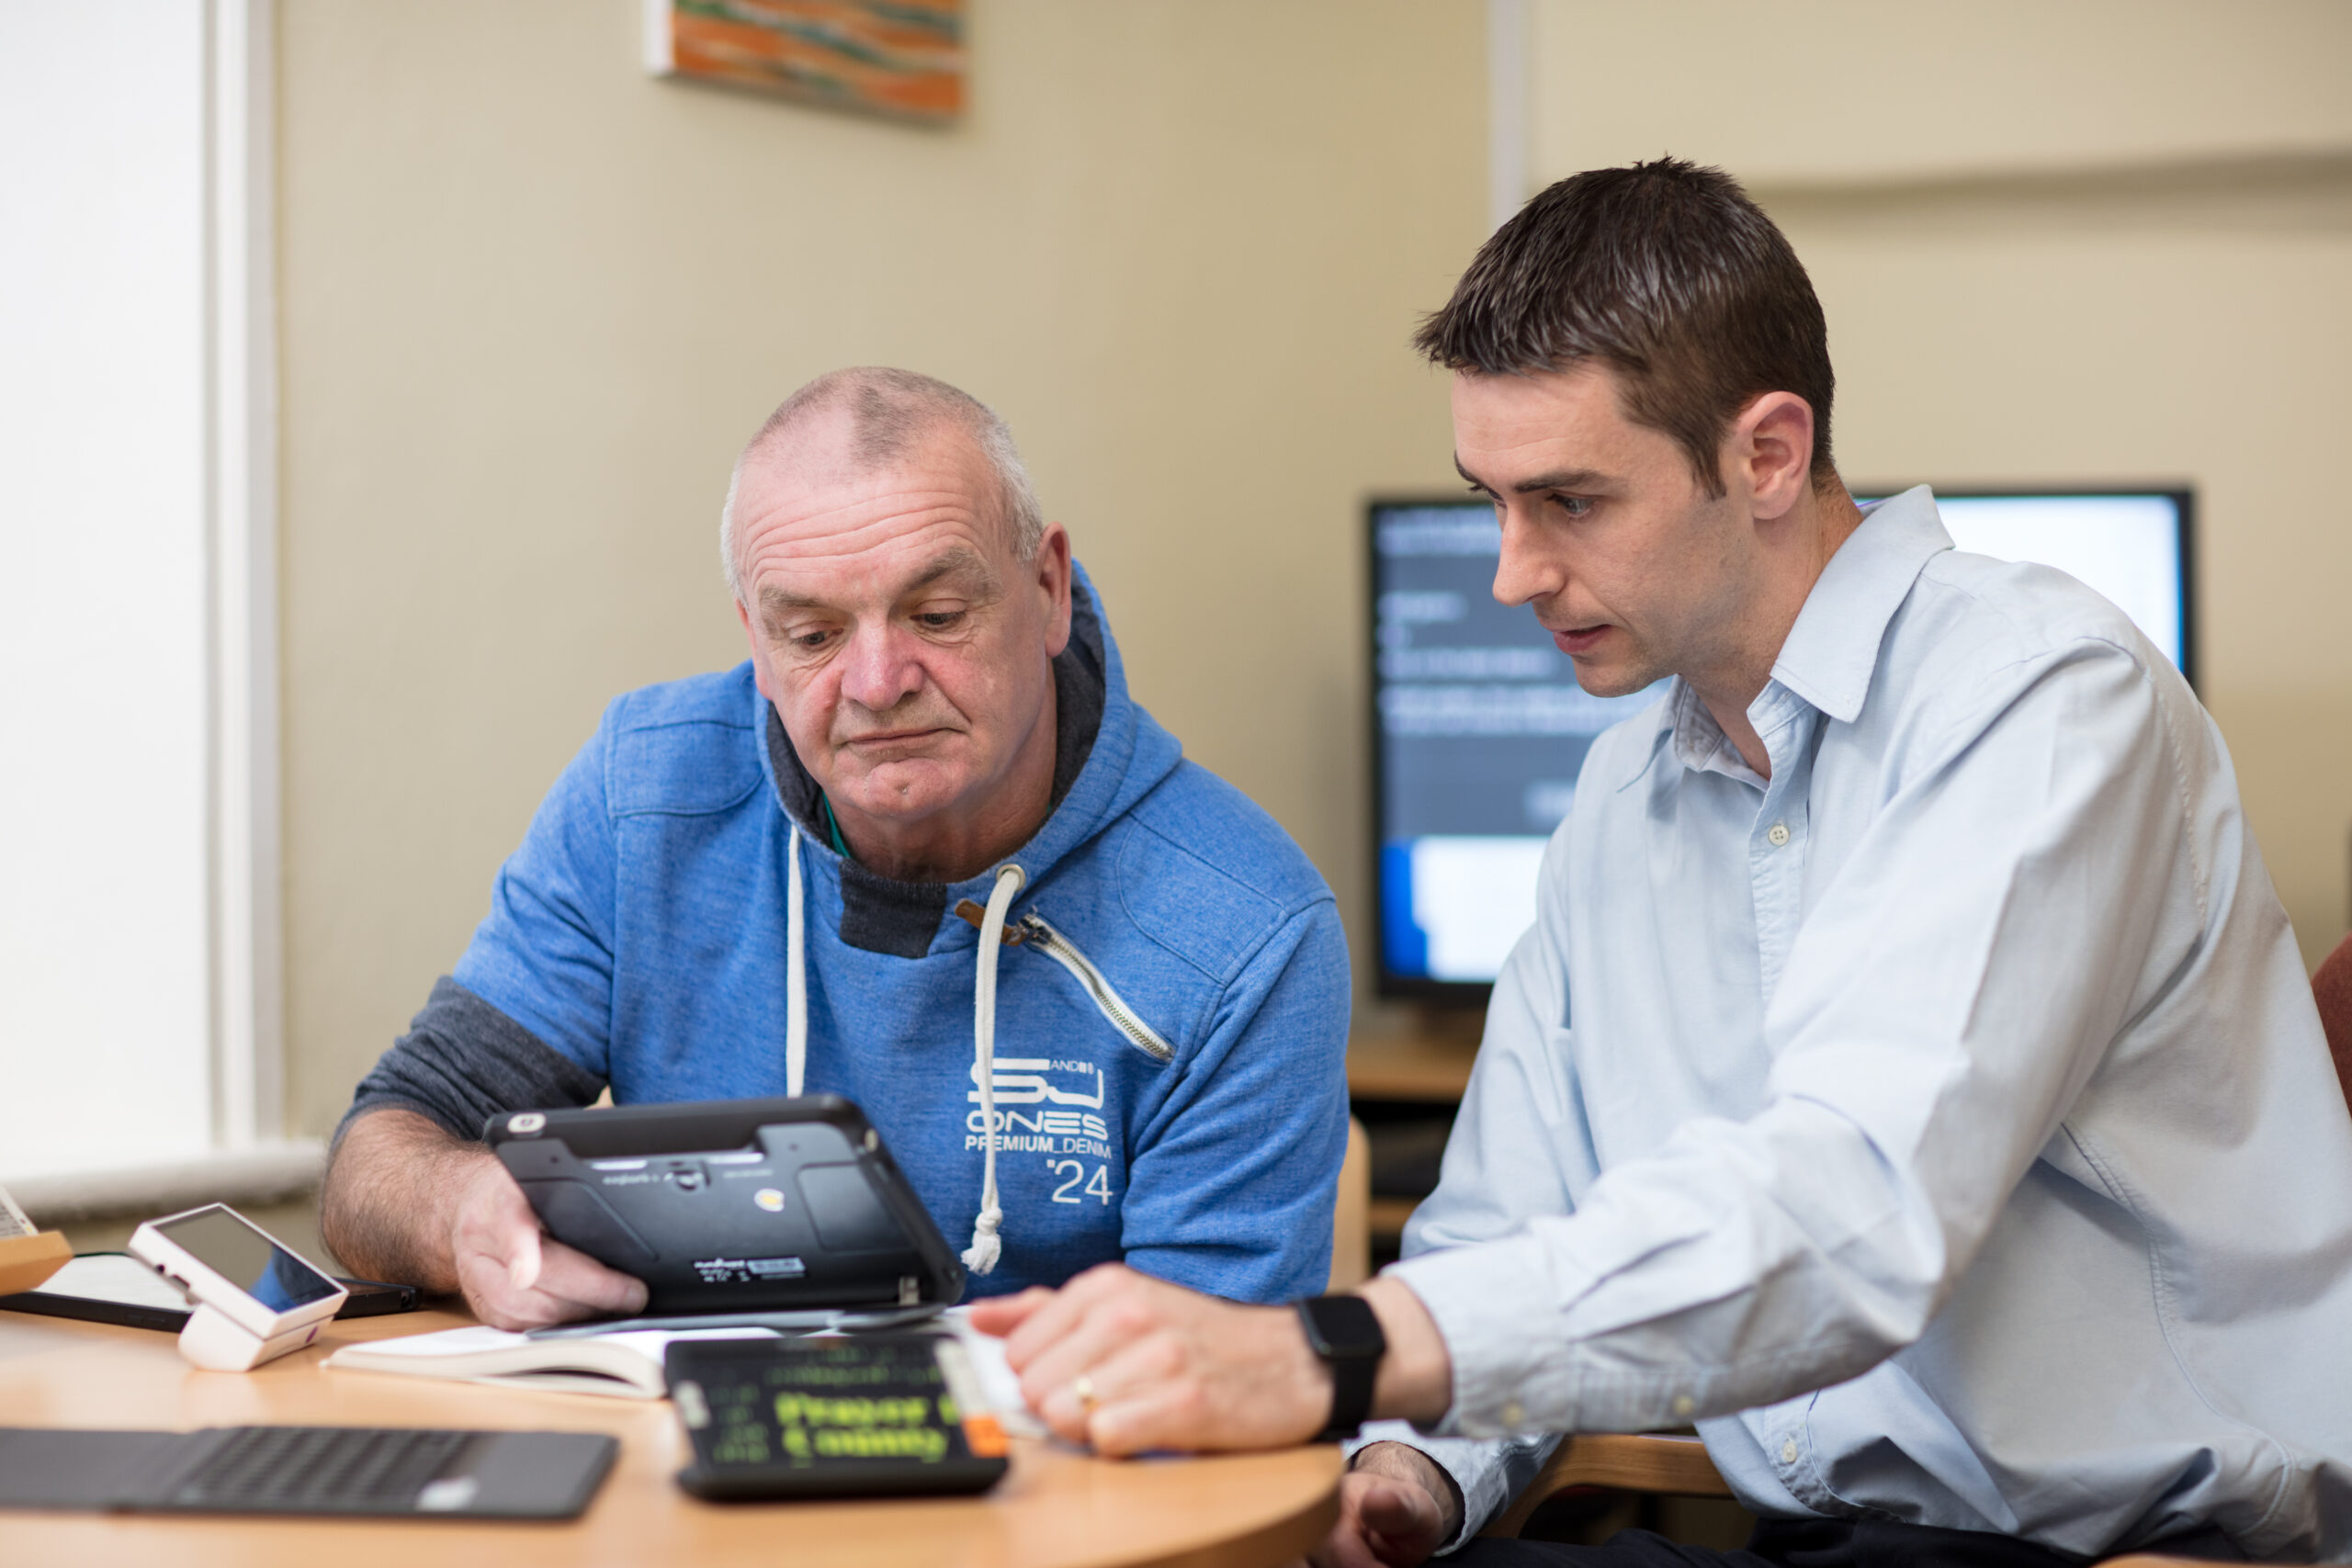 Image of service user trialing magnification aids